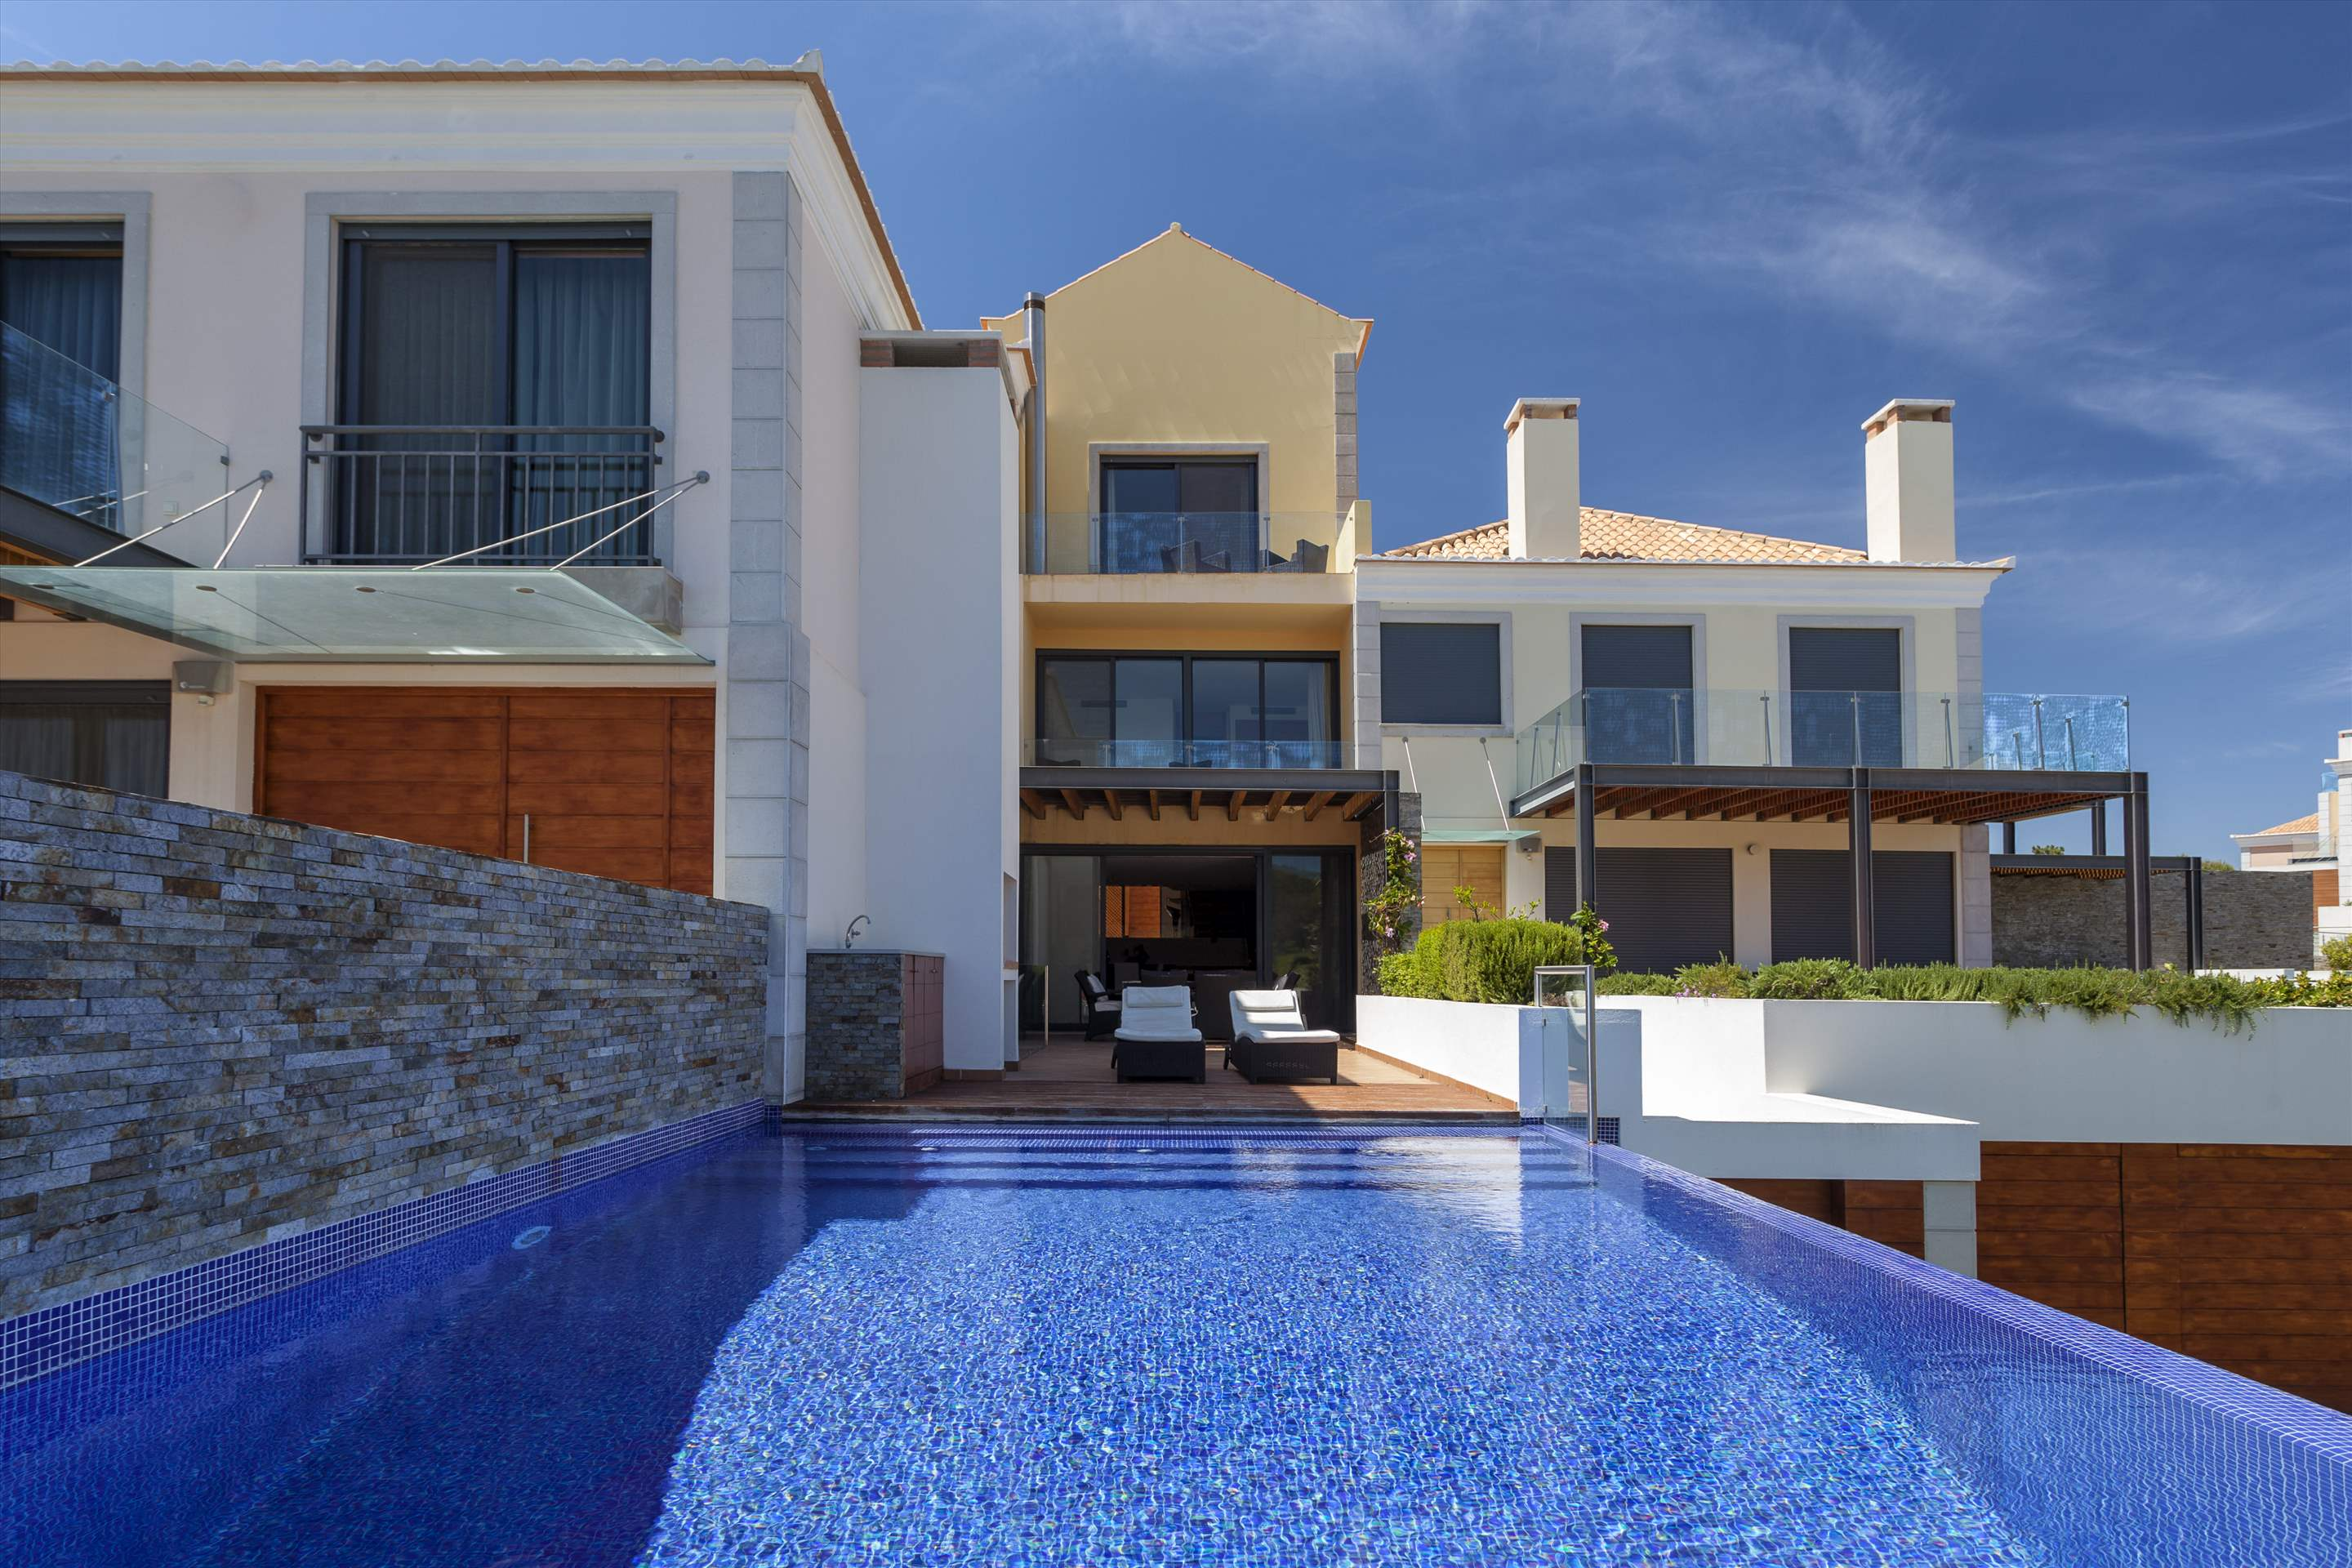 Villa Emily, 3 bedroom villa in Vale do Lobo, Algarve